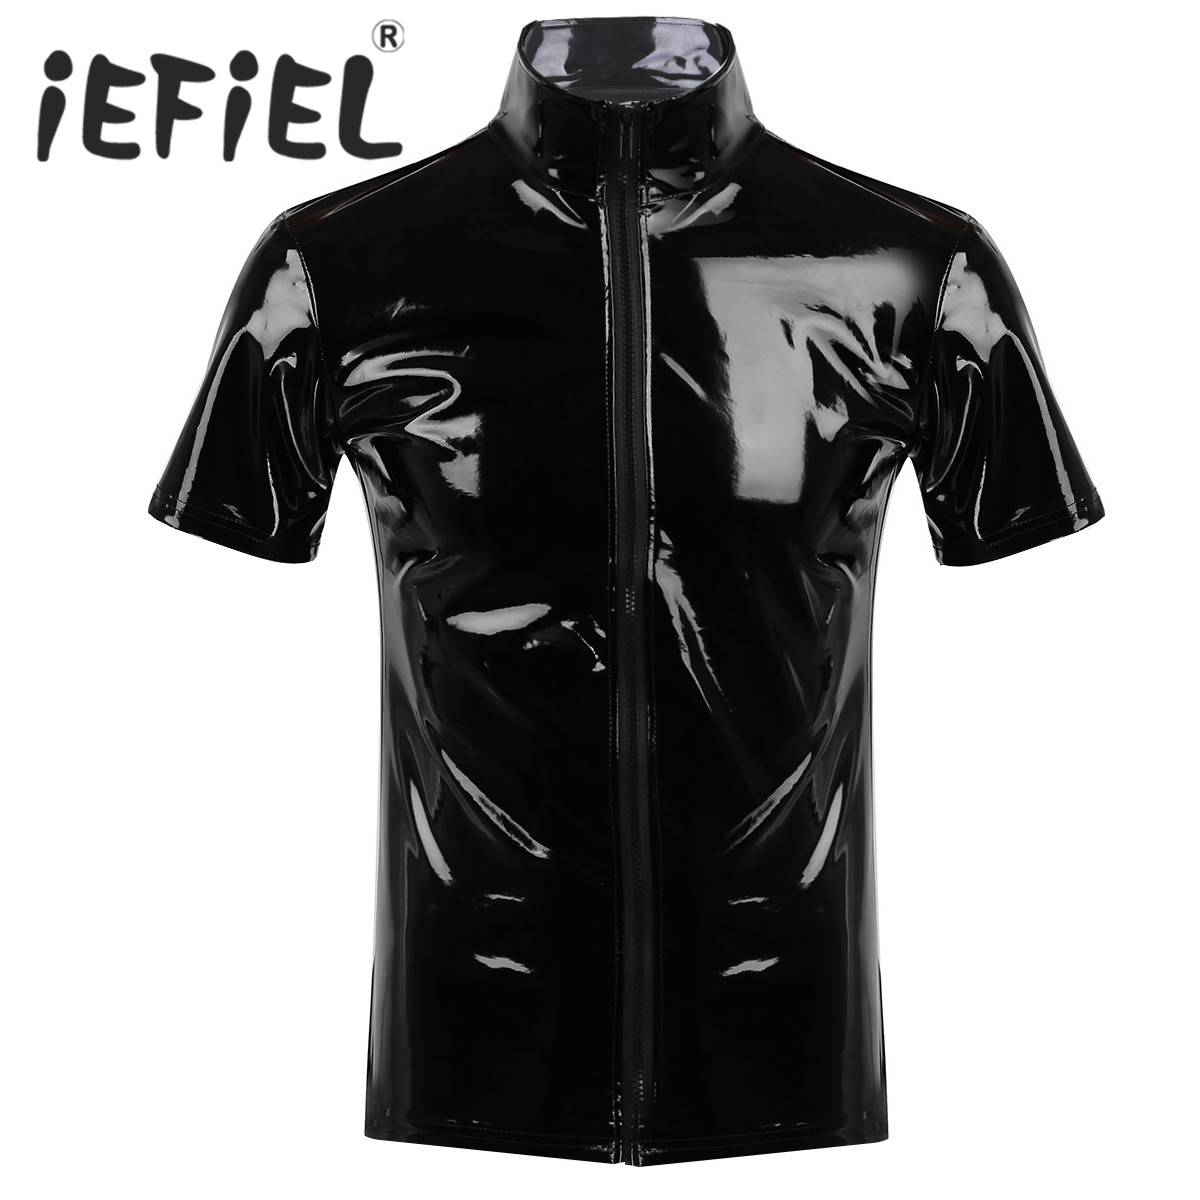 Fashion Unisex Metallic Novelty Hipster PVC Leather Stand Collar Short Sleeves Front Zip Up T-shirt Tops for Clubwear Cosplay